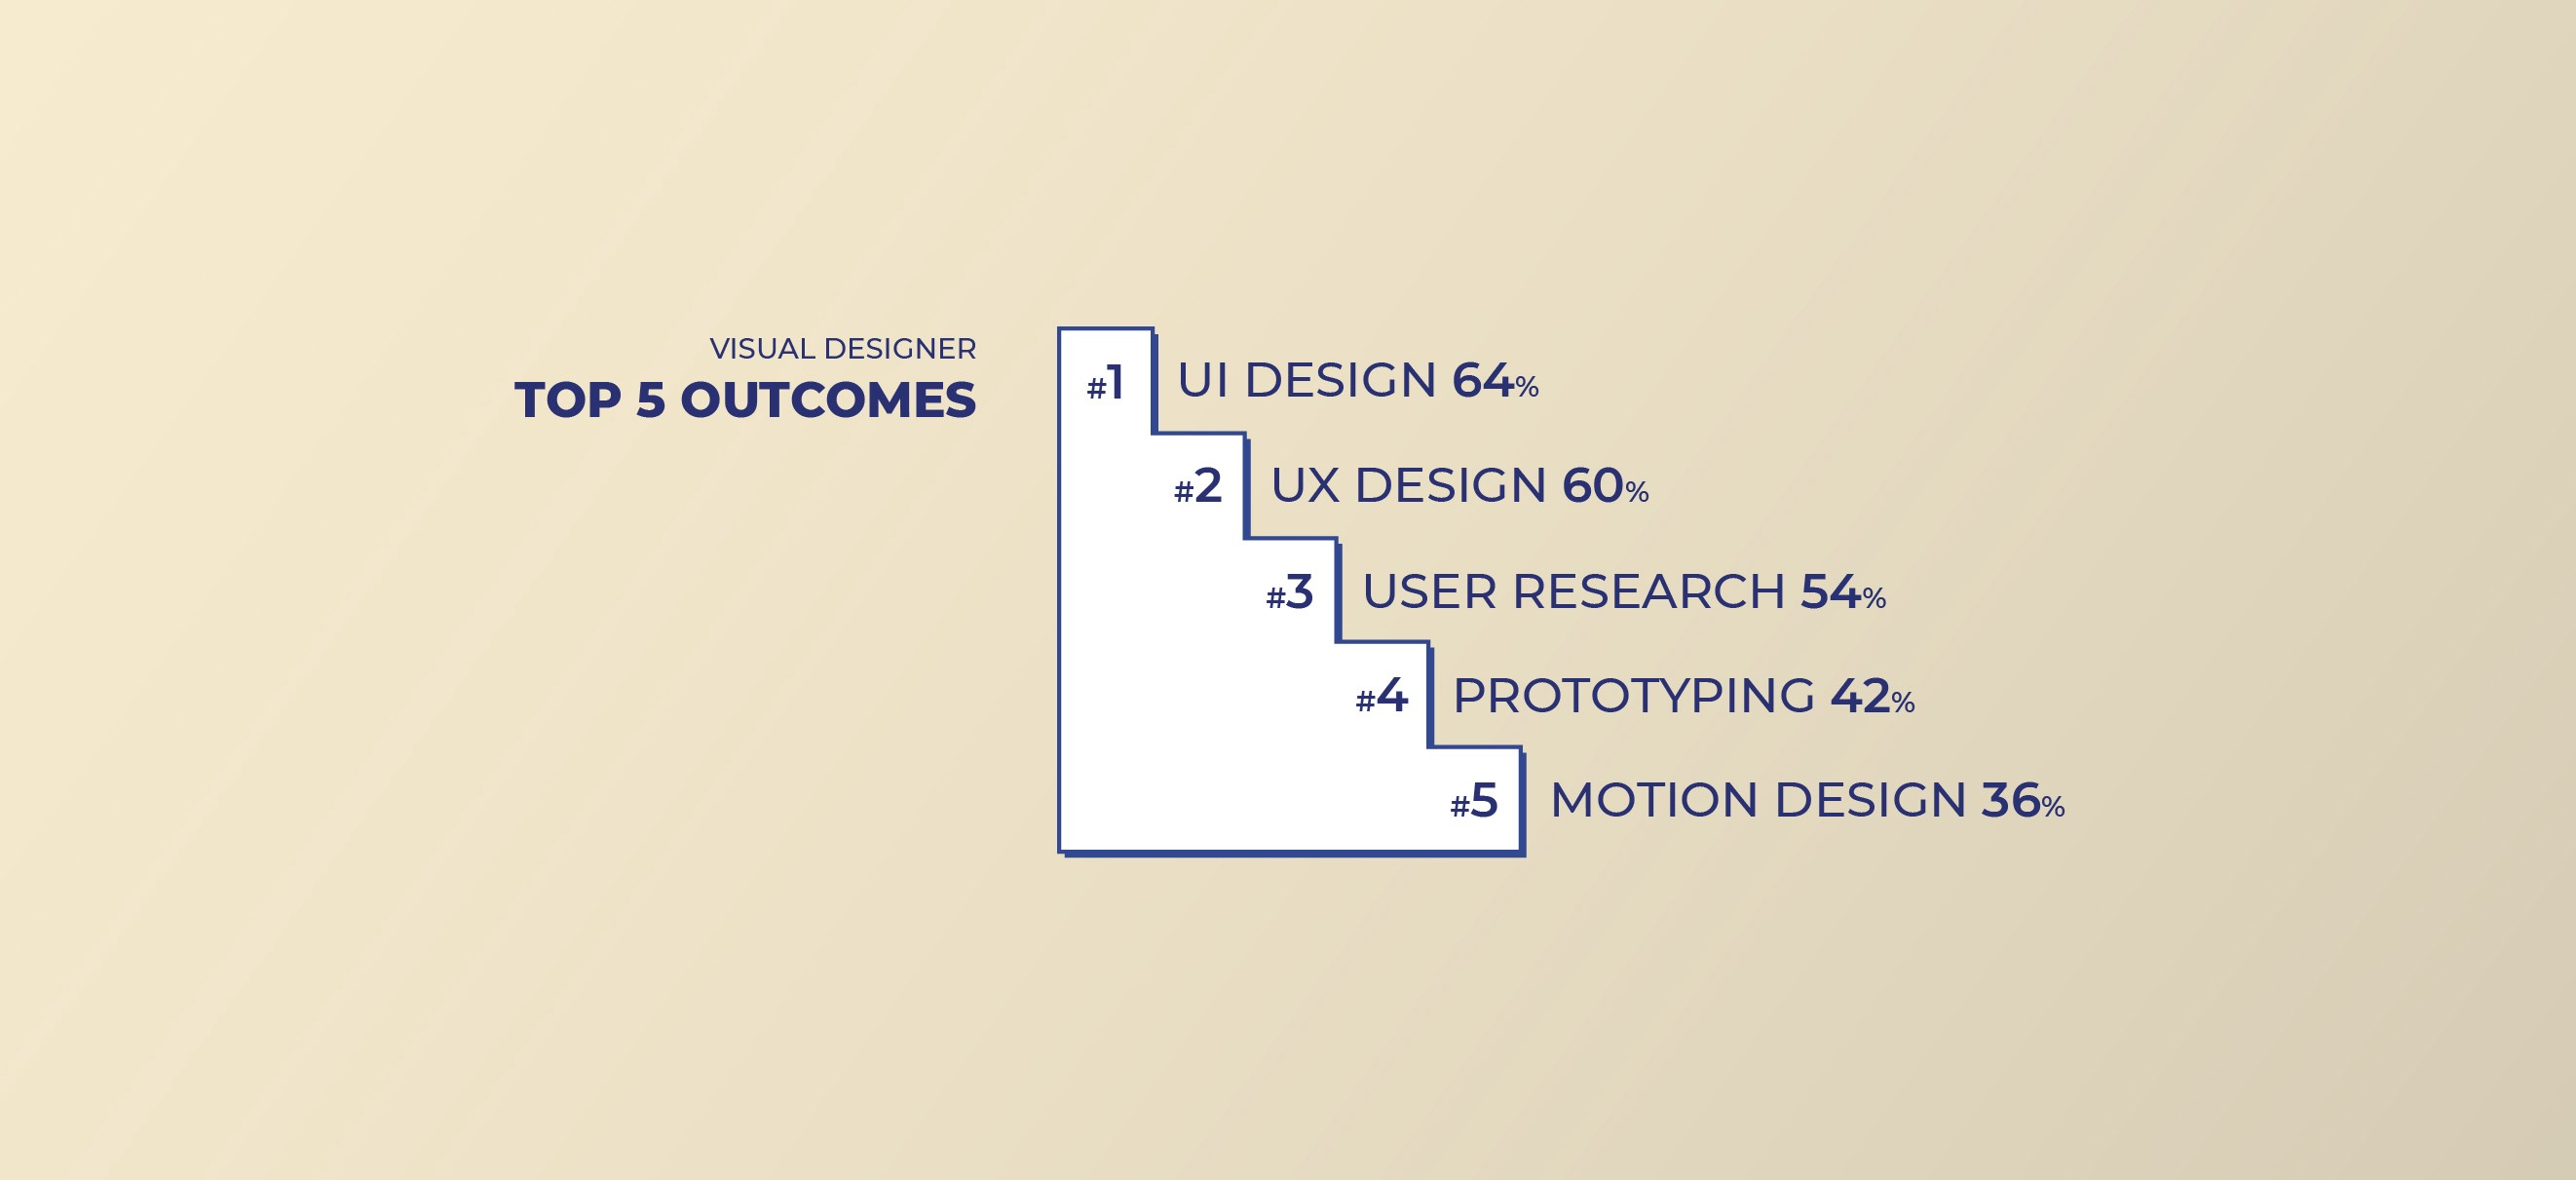 Top 5 Outcomes for Visual Designers: UI, UX, User Research, Prototyping, Motion Design.